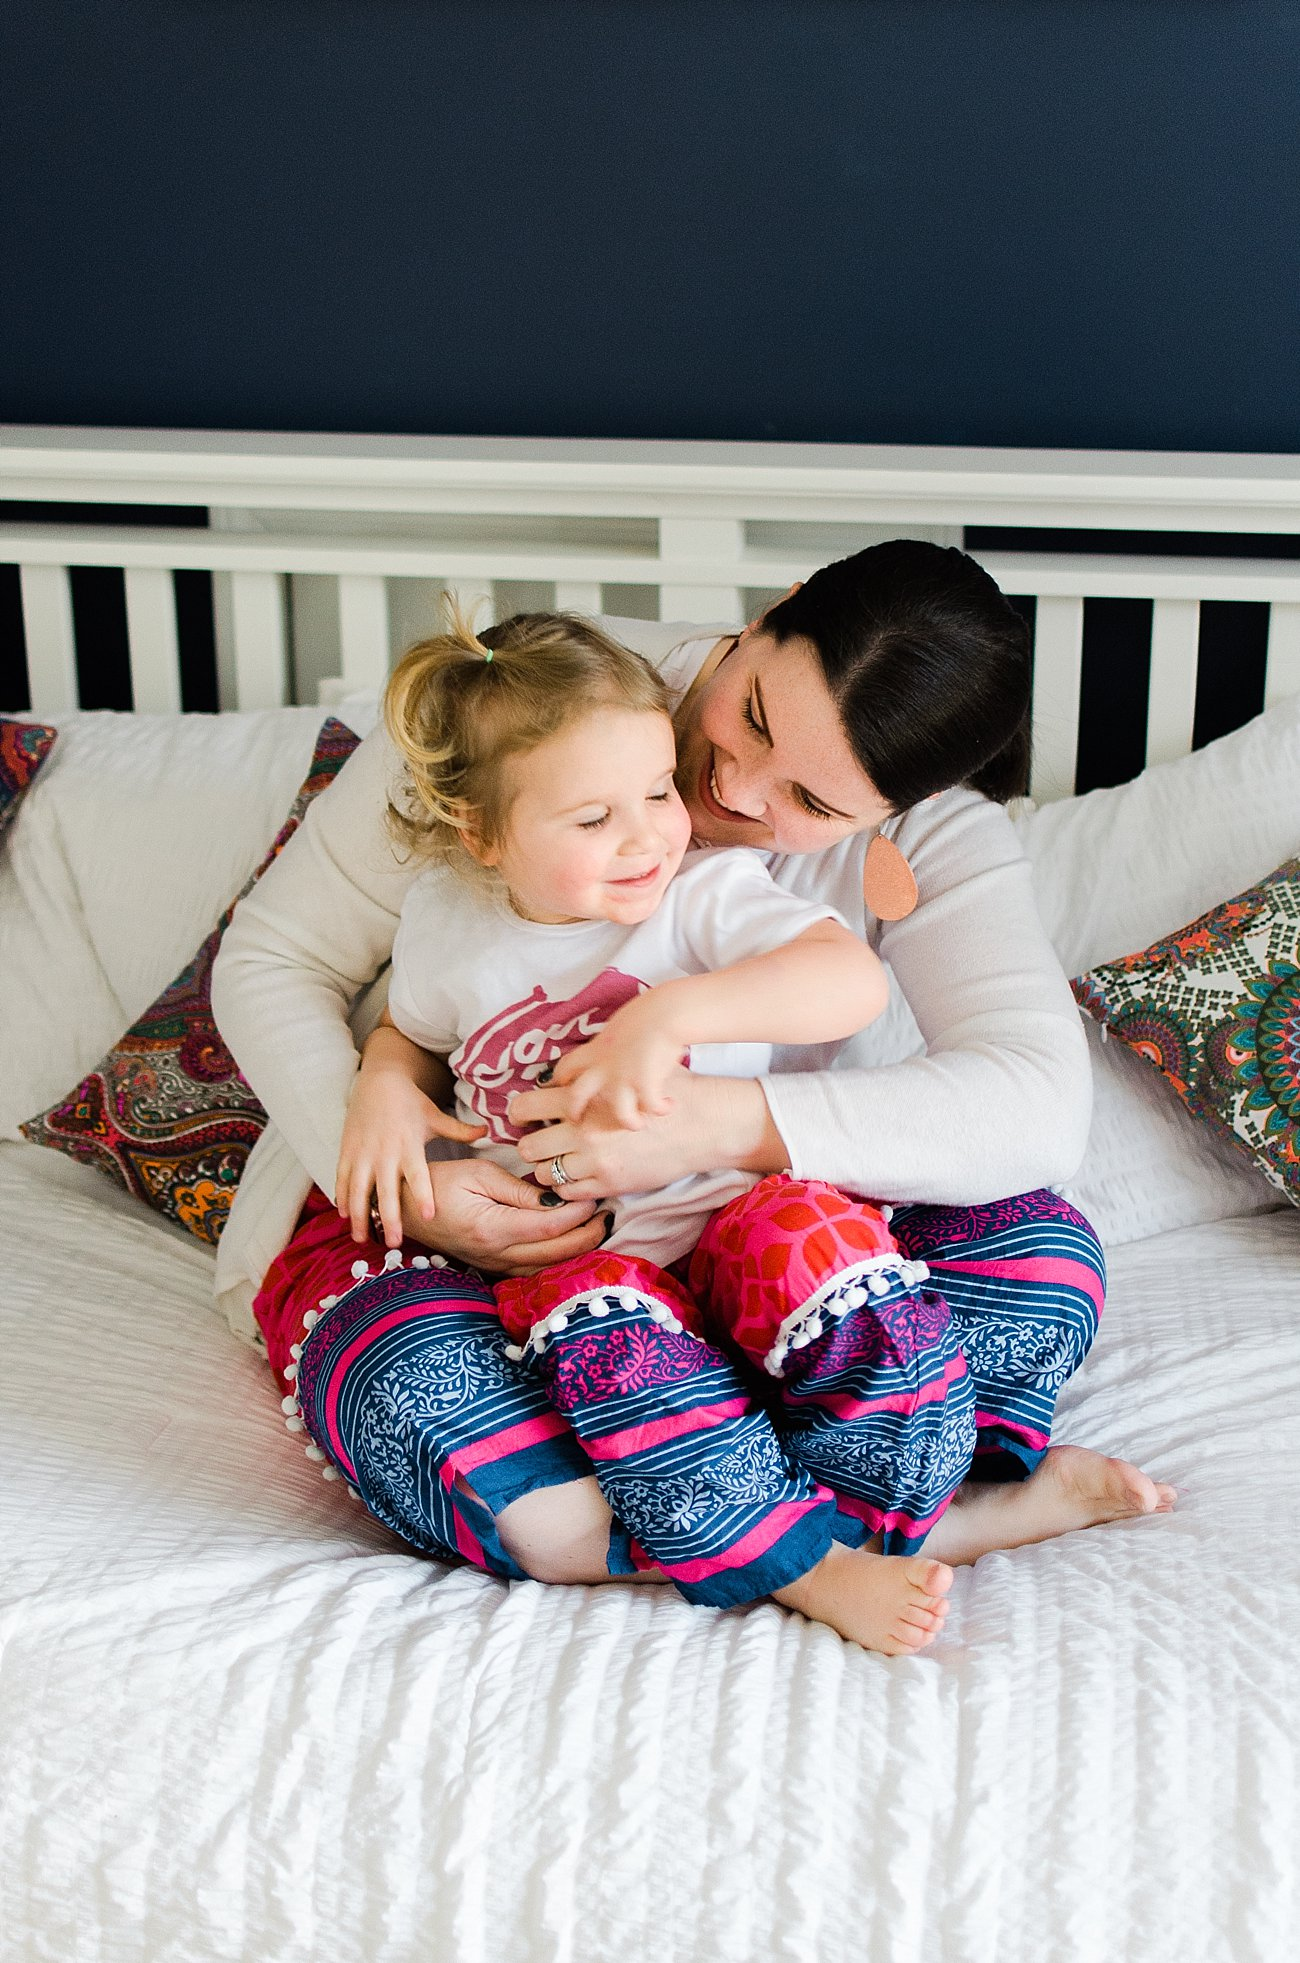 Sudara Goods Mommy & Me Punjammies - Ethical Fashion, Ethically Made Loungewear (2)